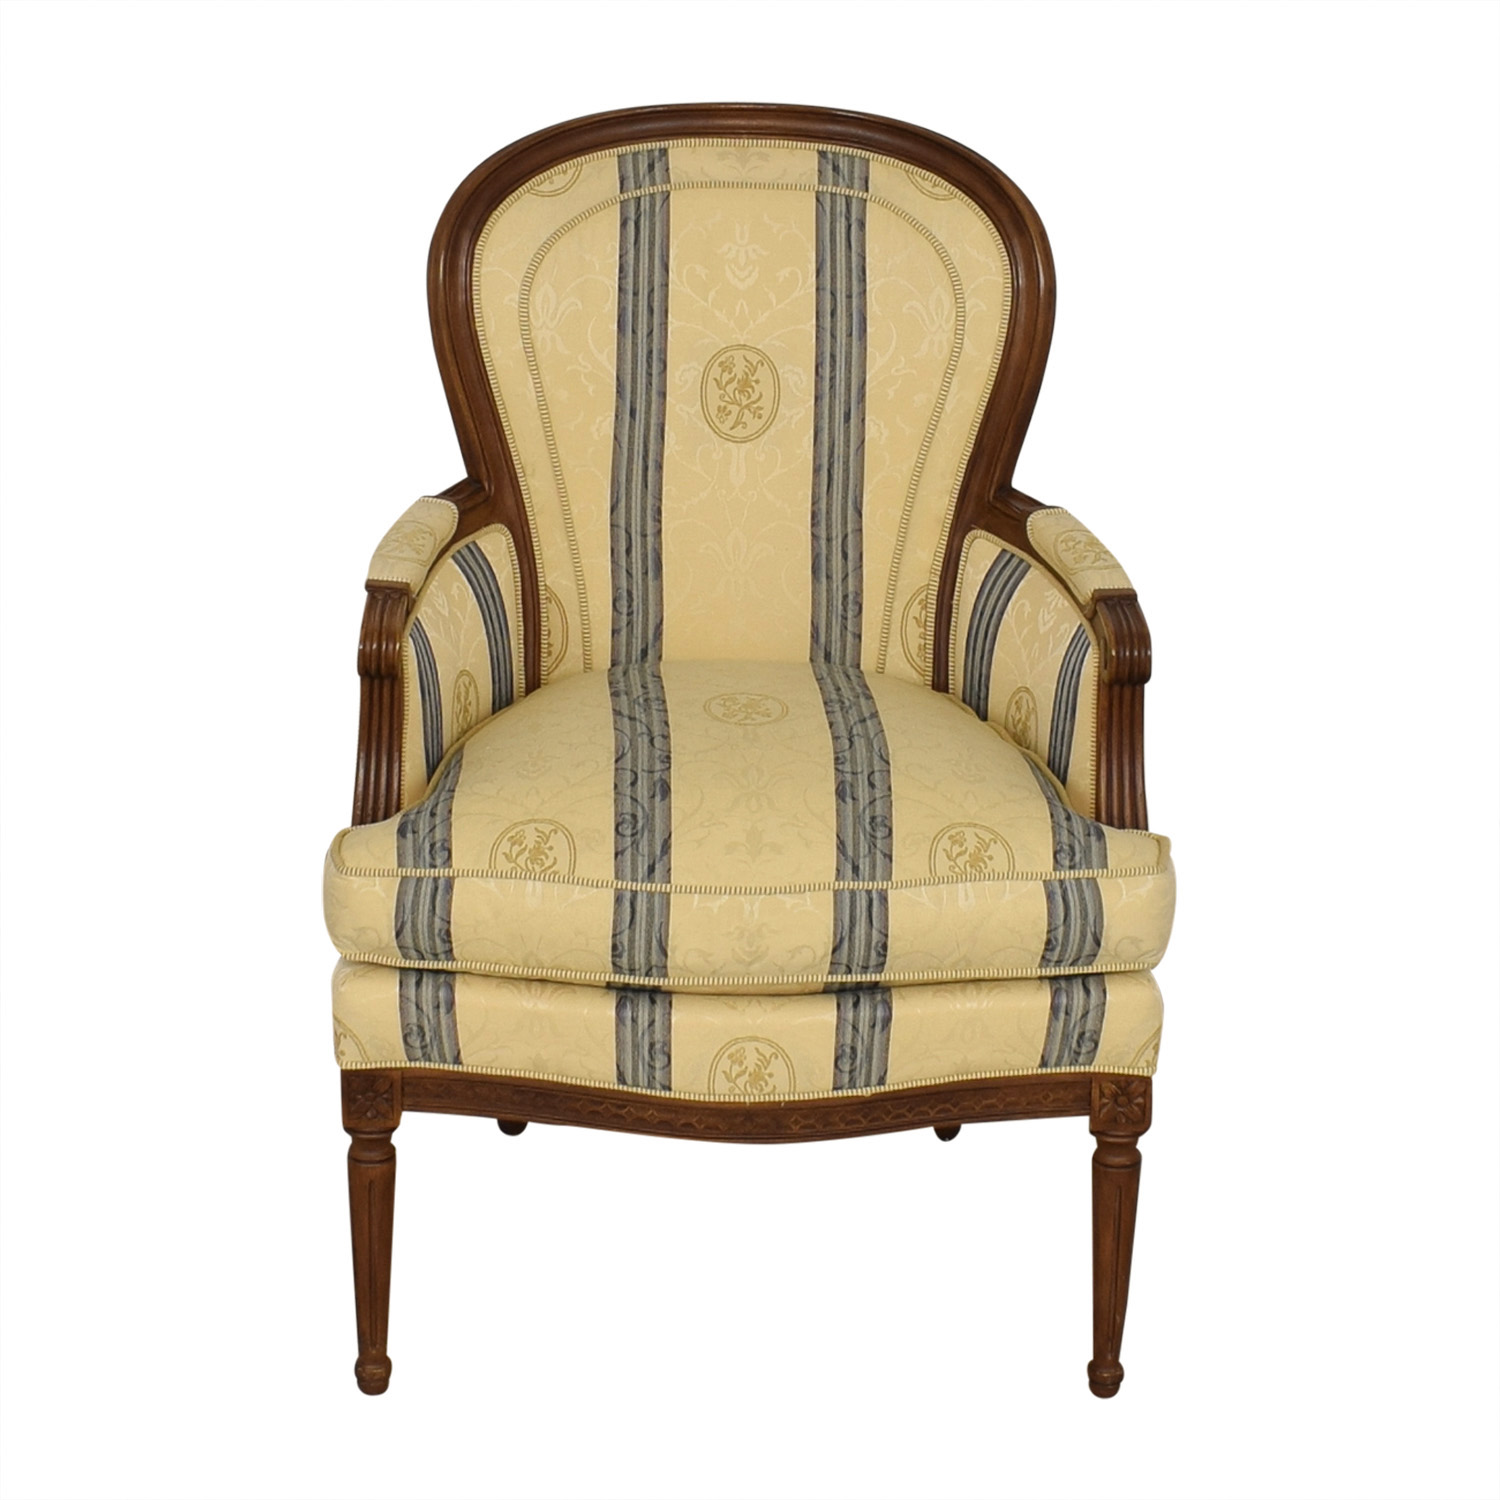 buy Kravet Chair Kravet Chairs